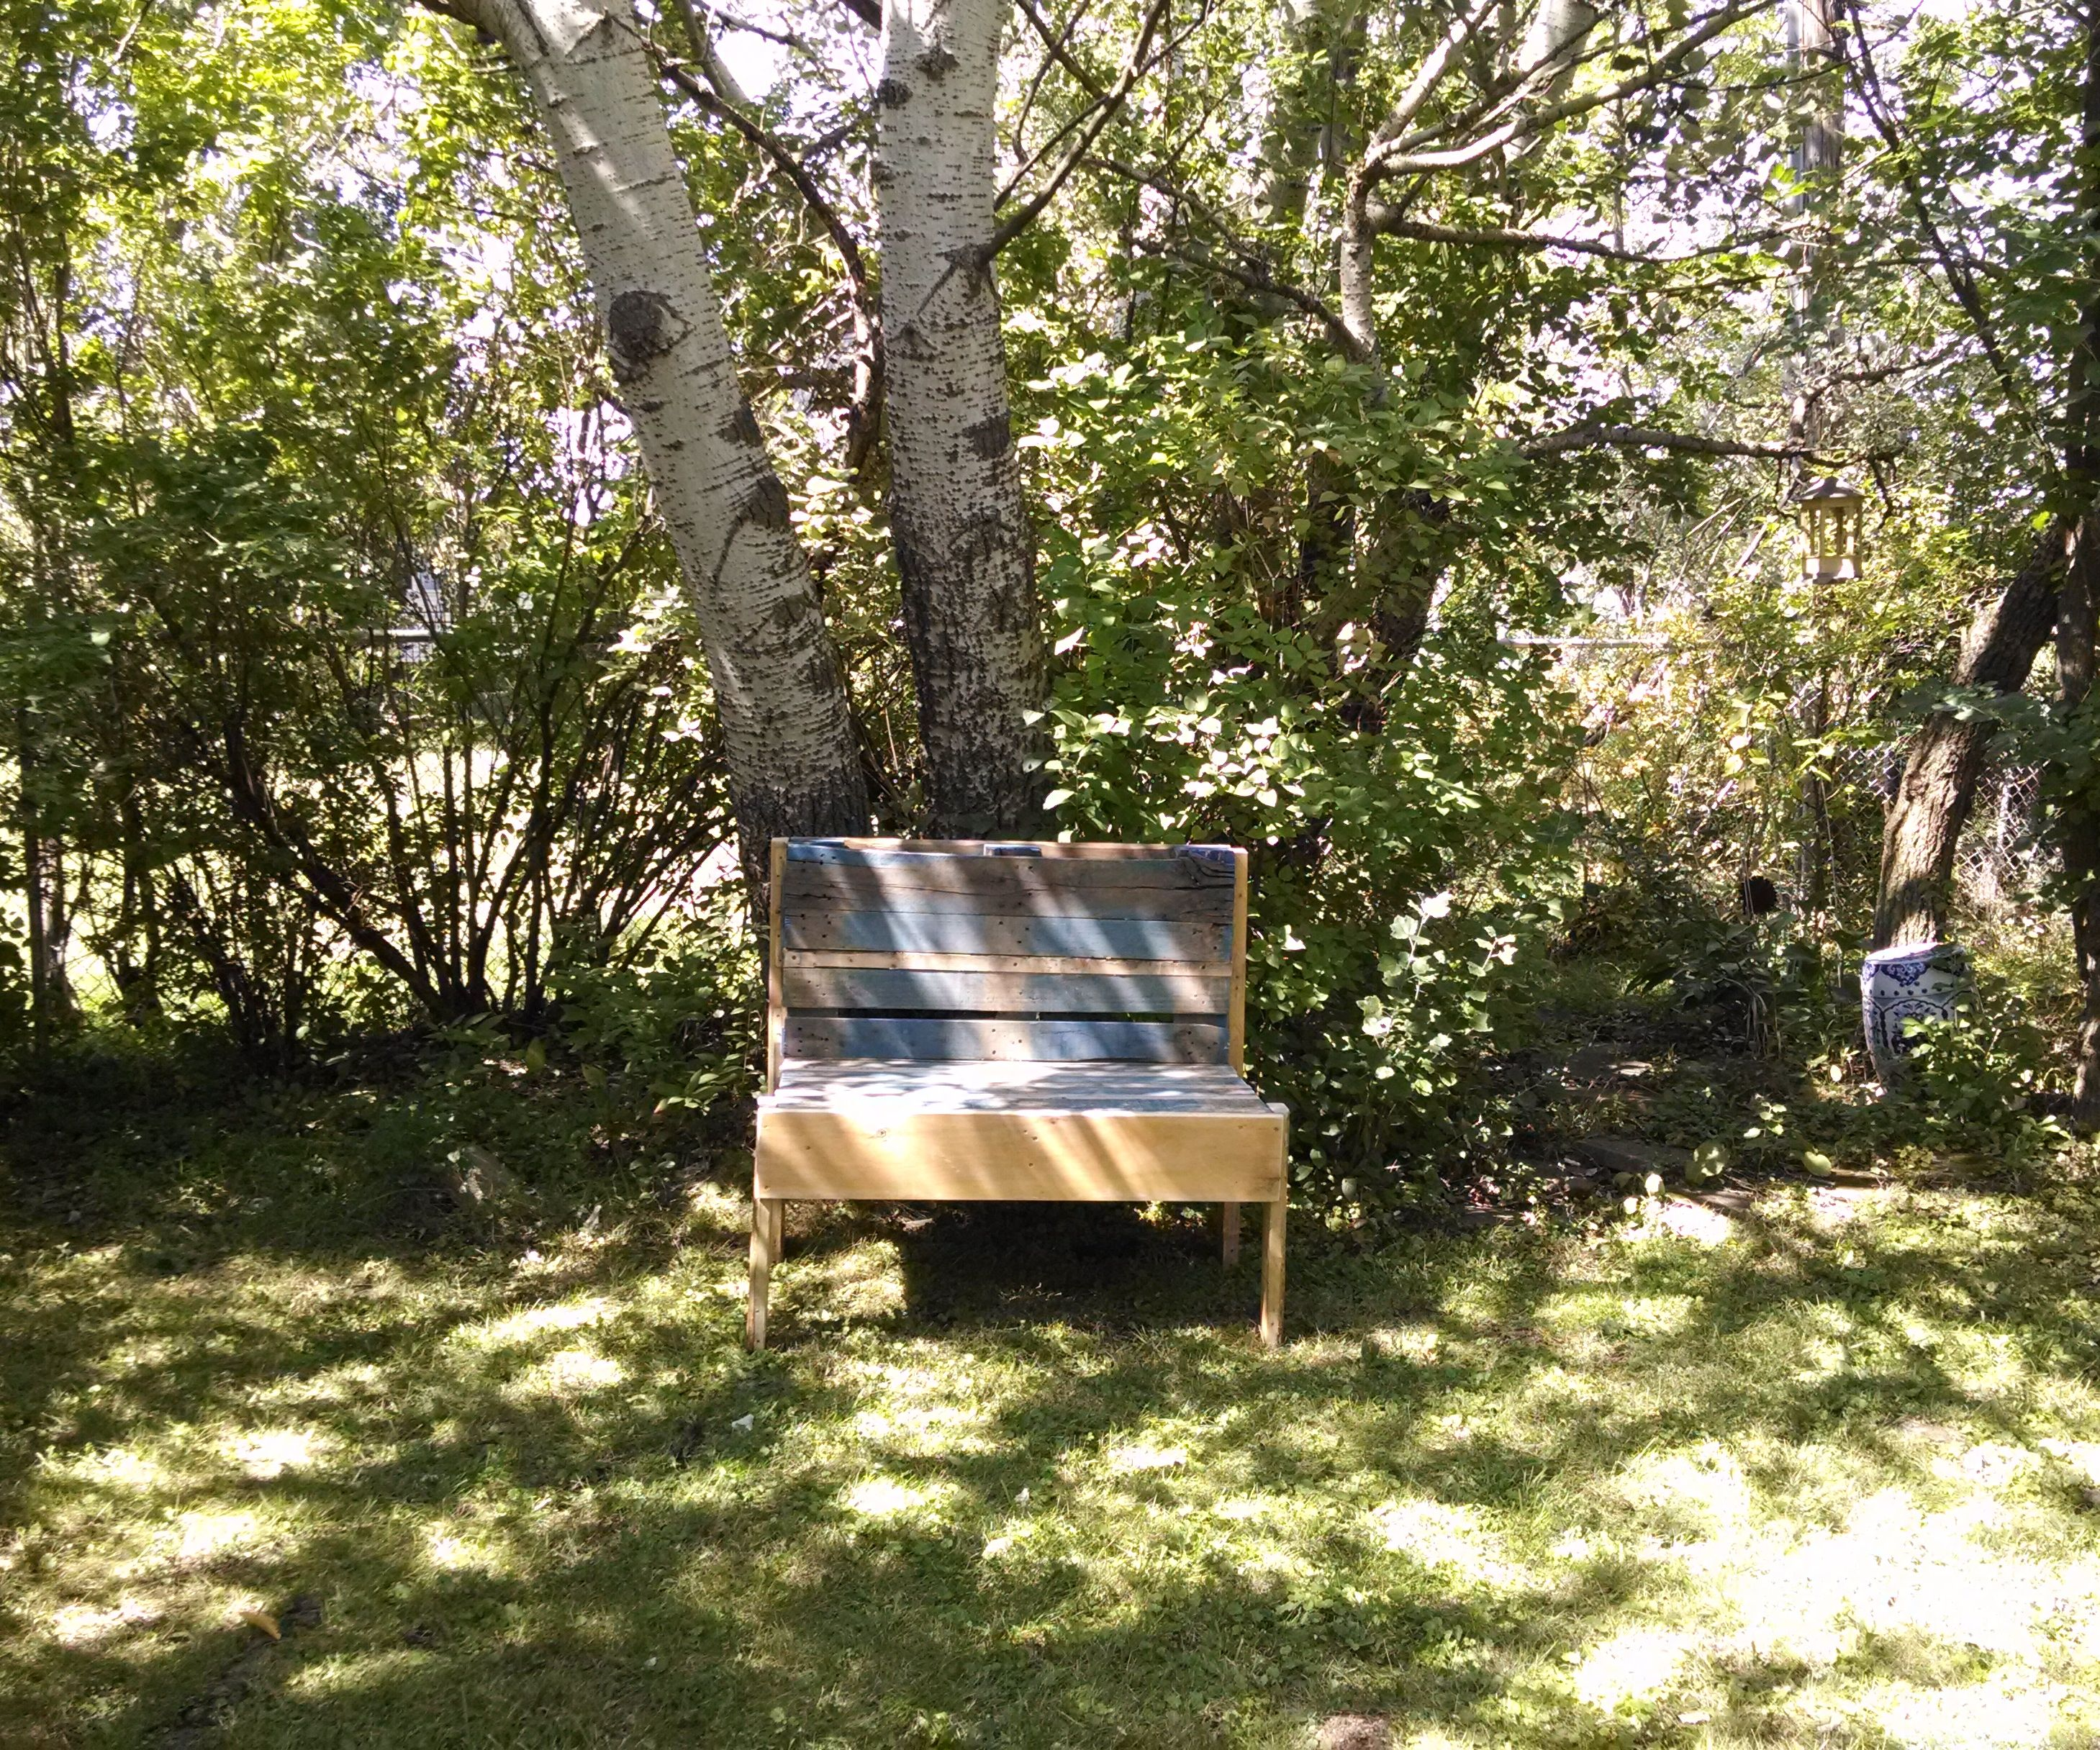 Yet another pallet bench